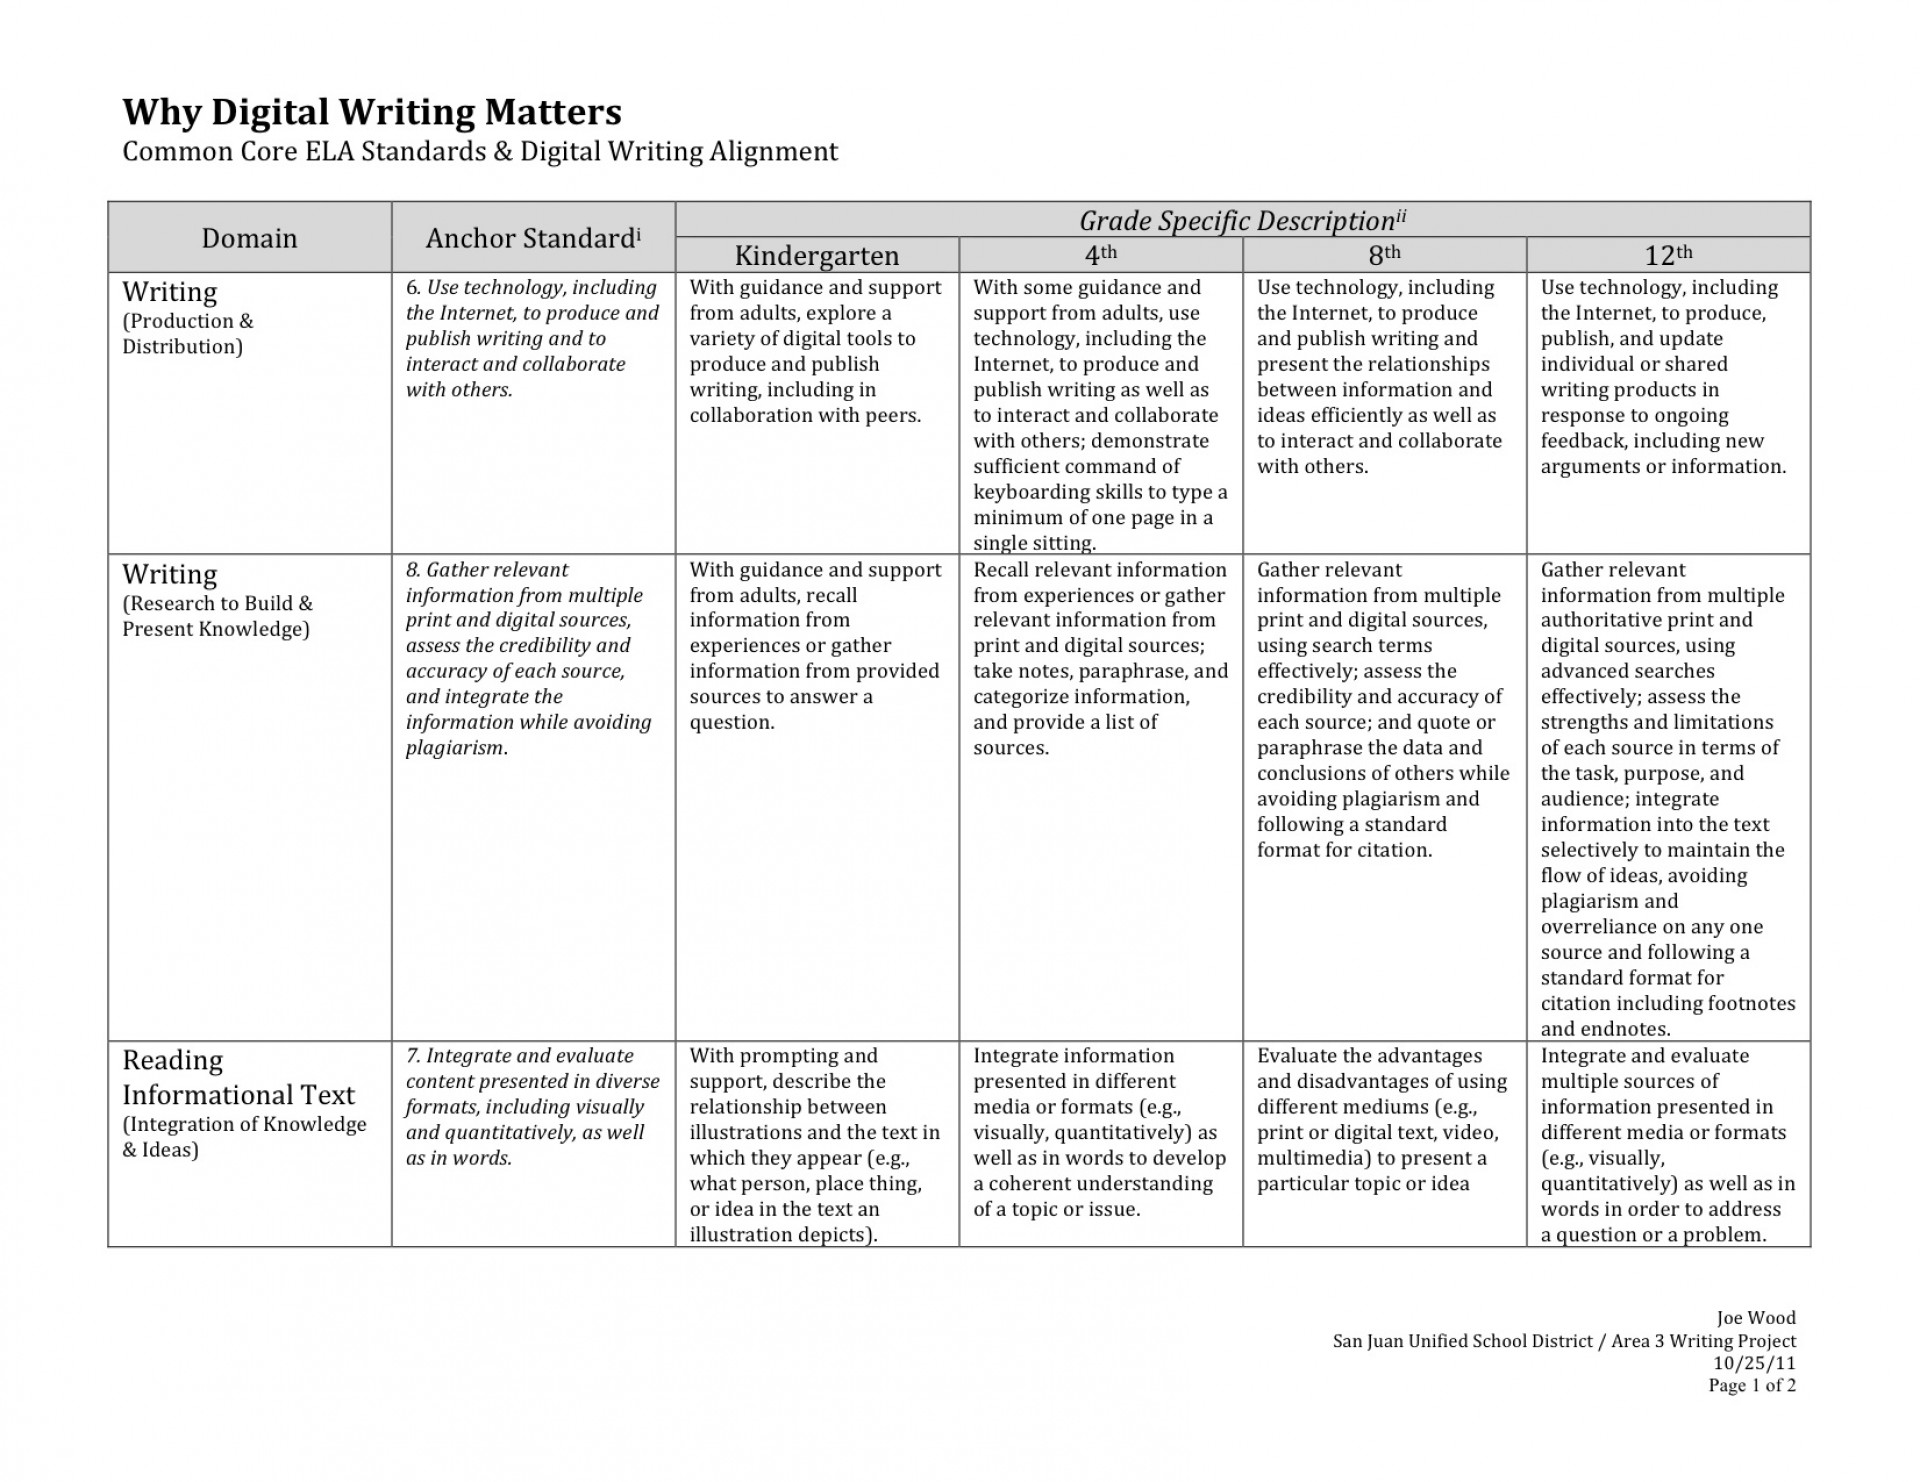 002 Research Paper High School History Rubric Why Digital Writing Matters According To The Common Core Ela Formidable 1920